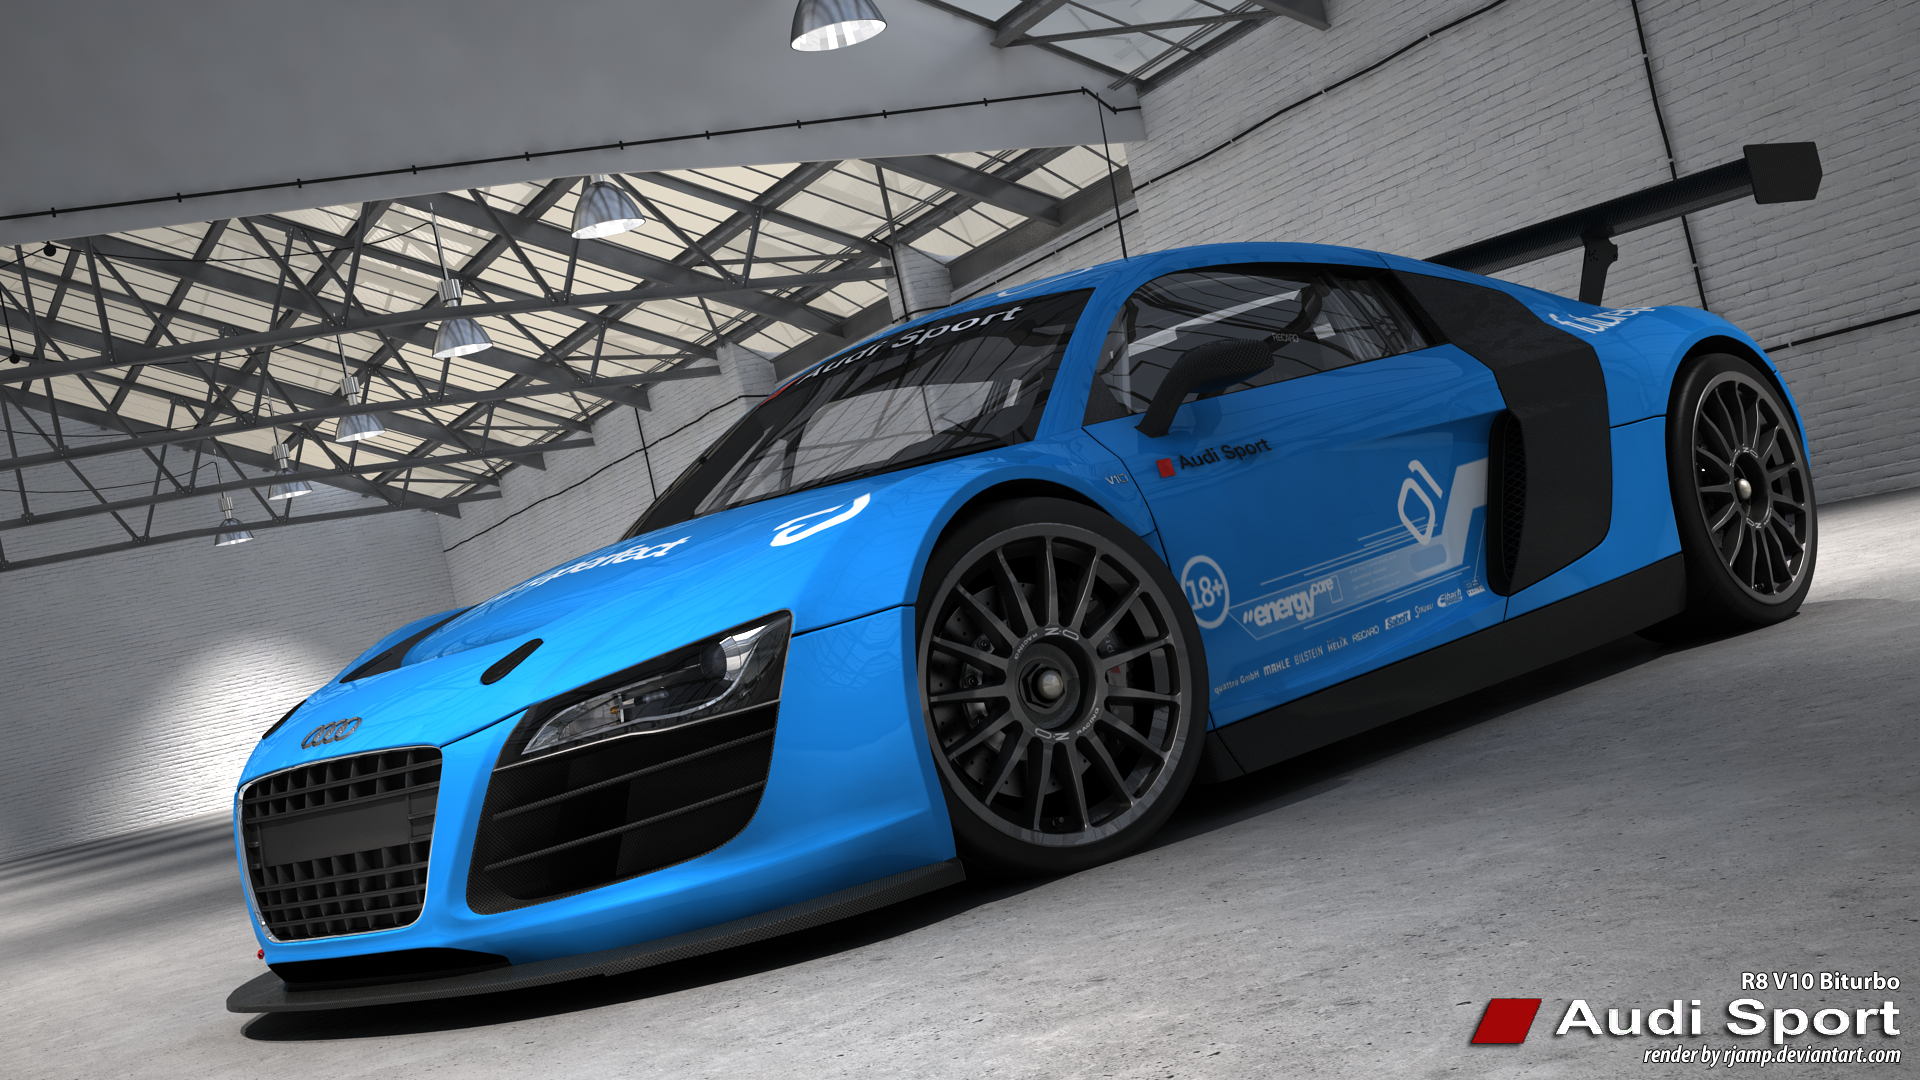 Audi R8 V10 biturbo R1 by RJamp